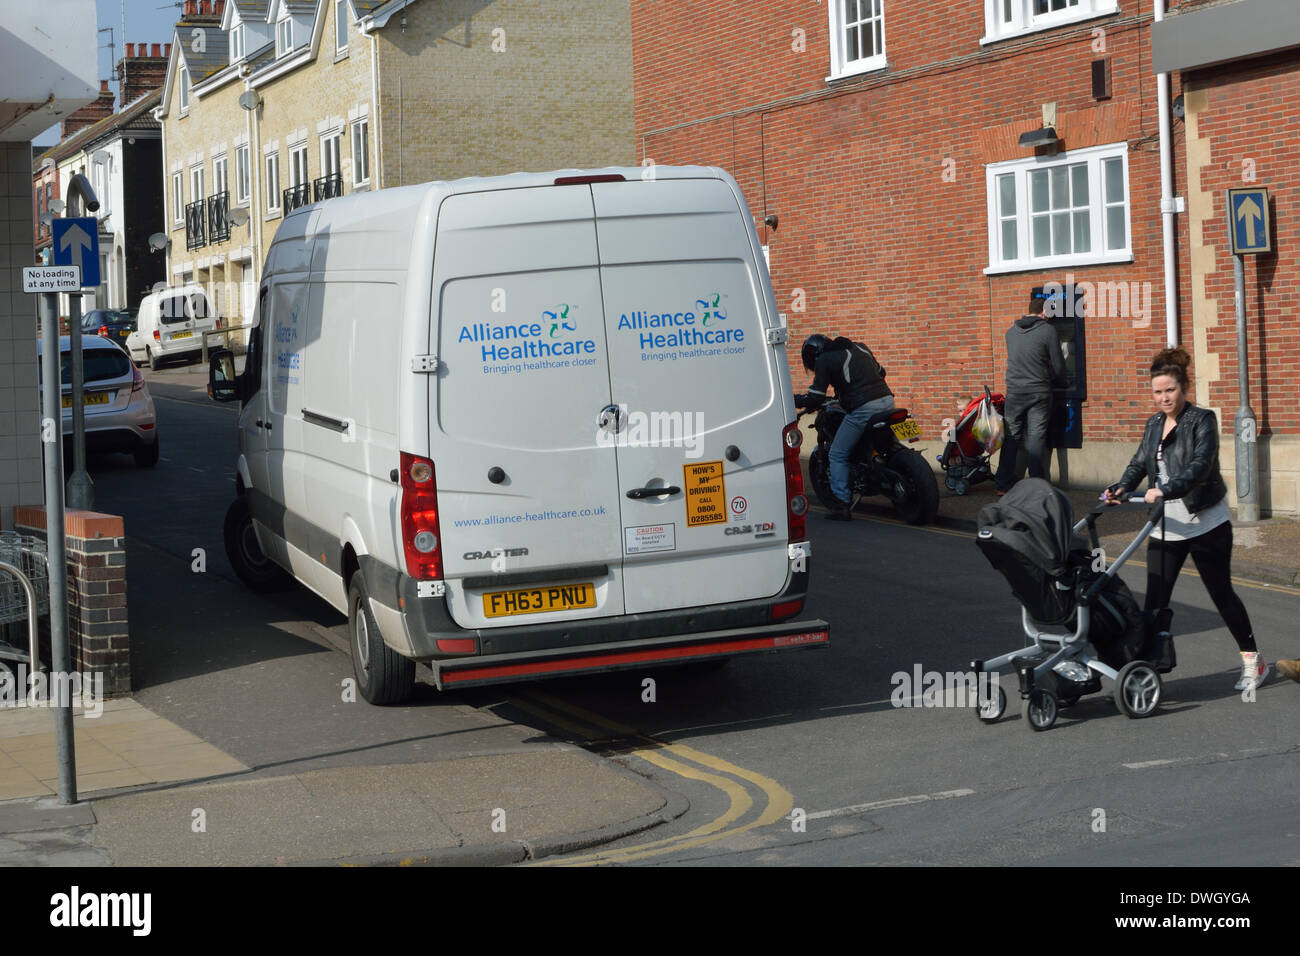 Gorleston-on-Sea, Norfolk, UK. 8th March 2014. Van with 'How's My Driving?' sticker parked on double yellow lines and a disabled parking bay next to a junction where pedestrians are crossing. Gorleston-on-Sea, Norfolk, UK. 8th March 2014 Credit:  Stephen Gostick/Alamy Live News - Stock Image